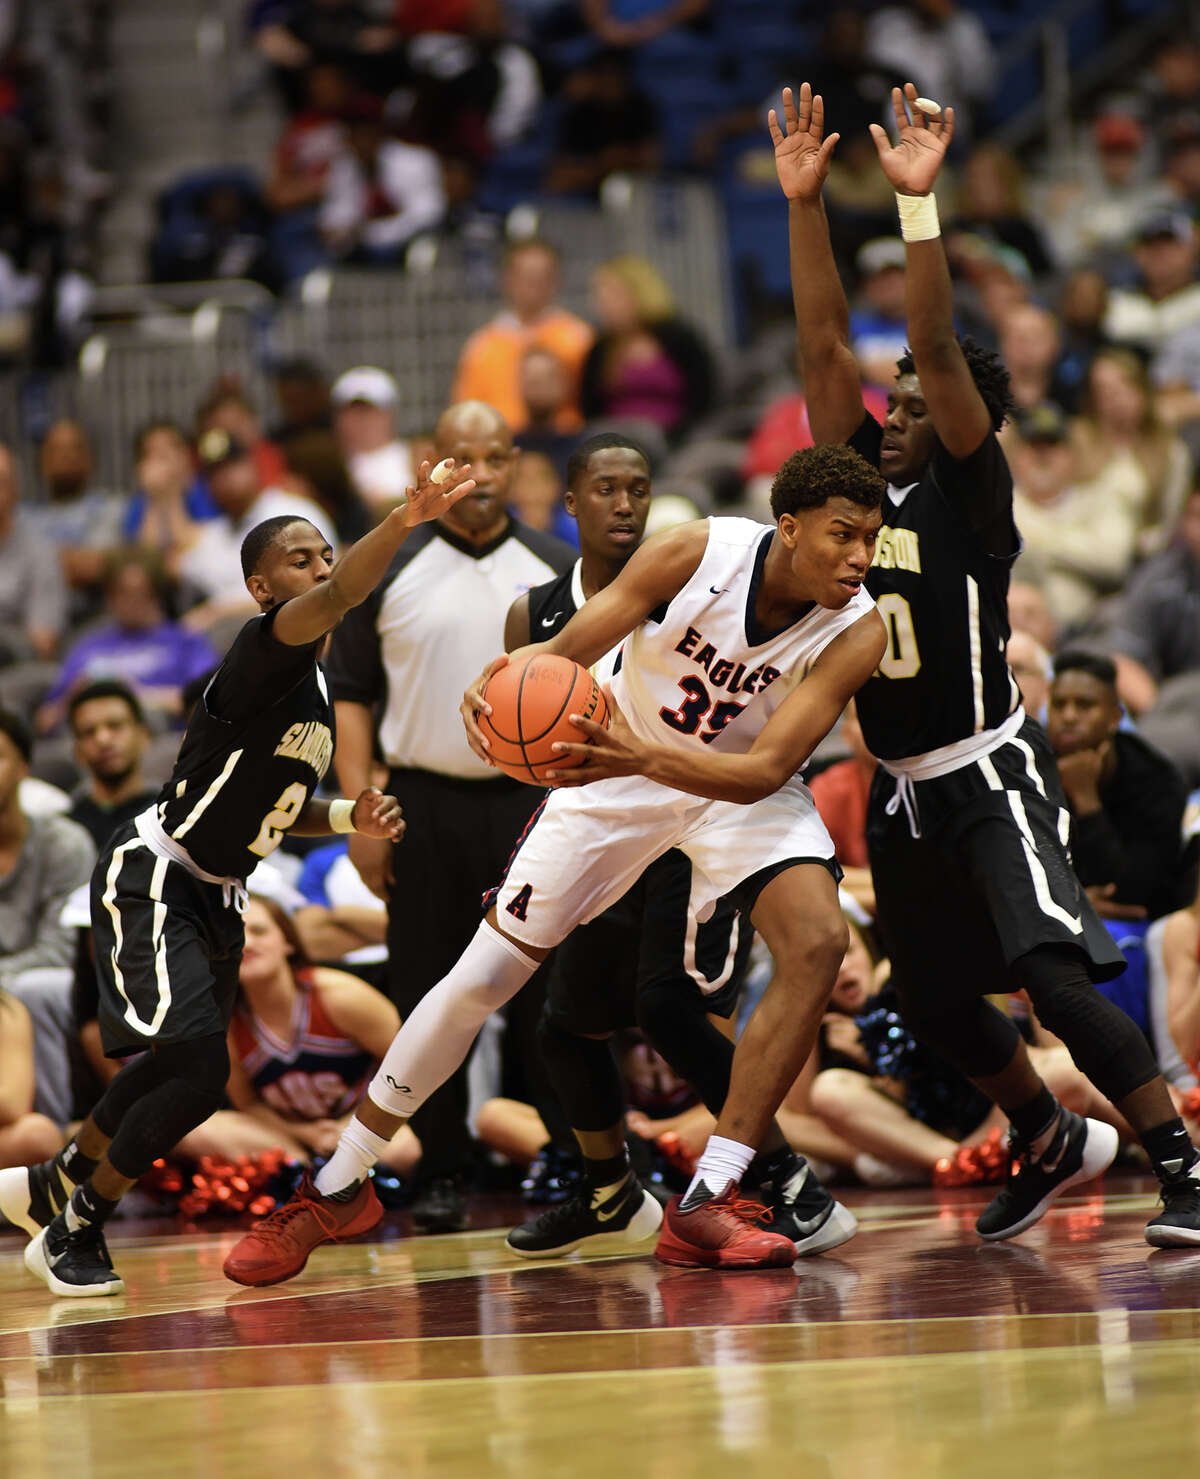 Atascocita junior forward Fabian White, center, drives to the hoop between Sam Houston defenders Lennard Robinson (2) and Terrell Wilson during fourth quarter action of their Class 6A boys basketball state semifinal matchup at the Alamodome in San Antonio on Friday, Mar. 11, 2016. (Photo by Jerry Baker/Freelance)